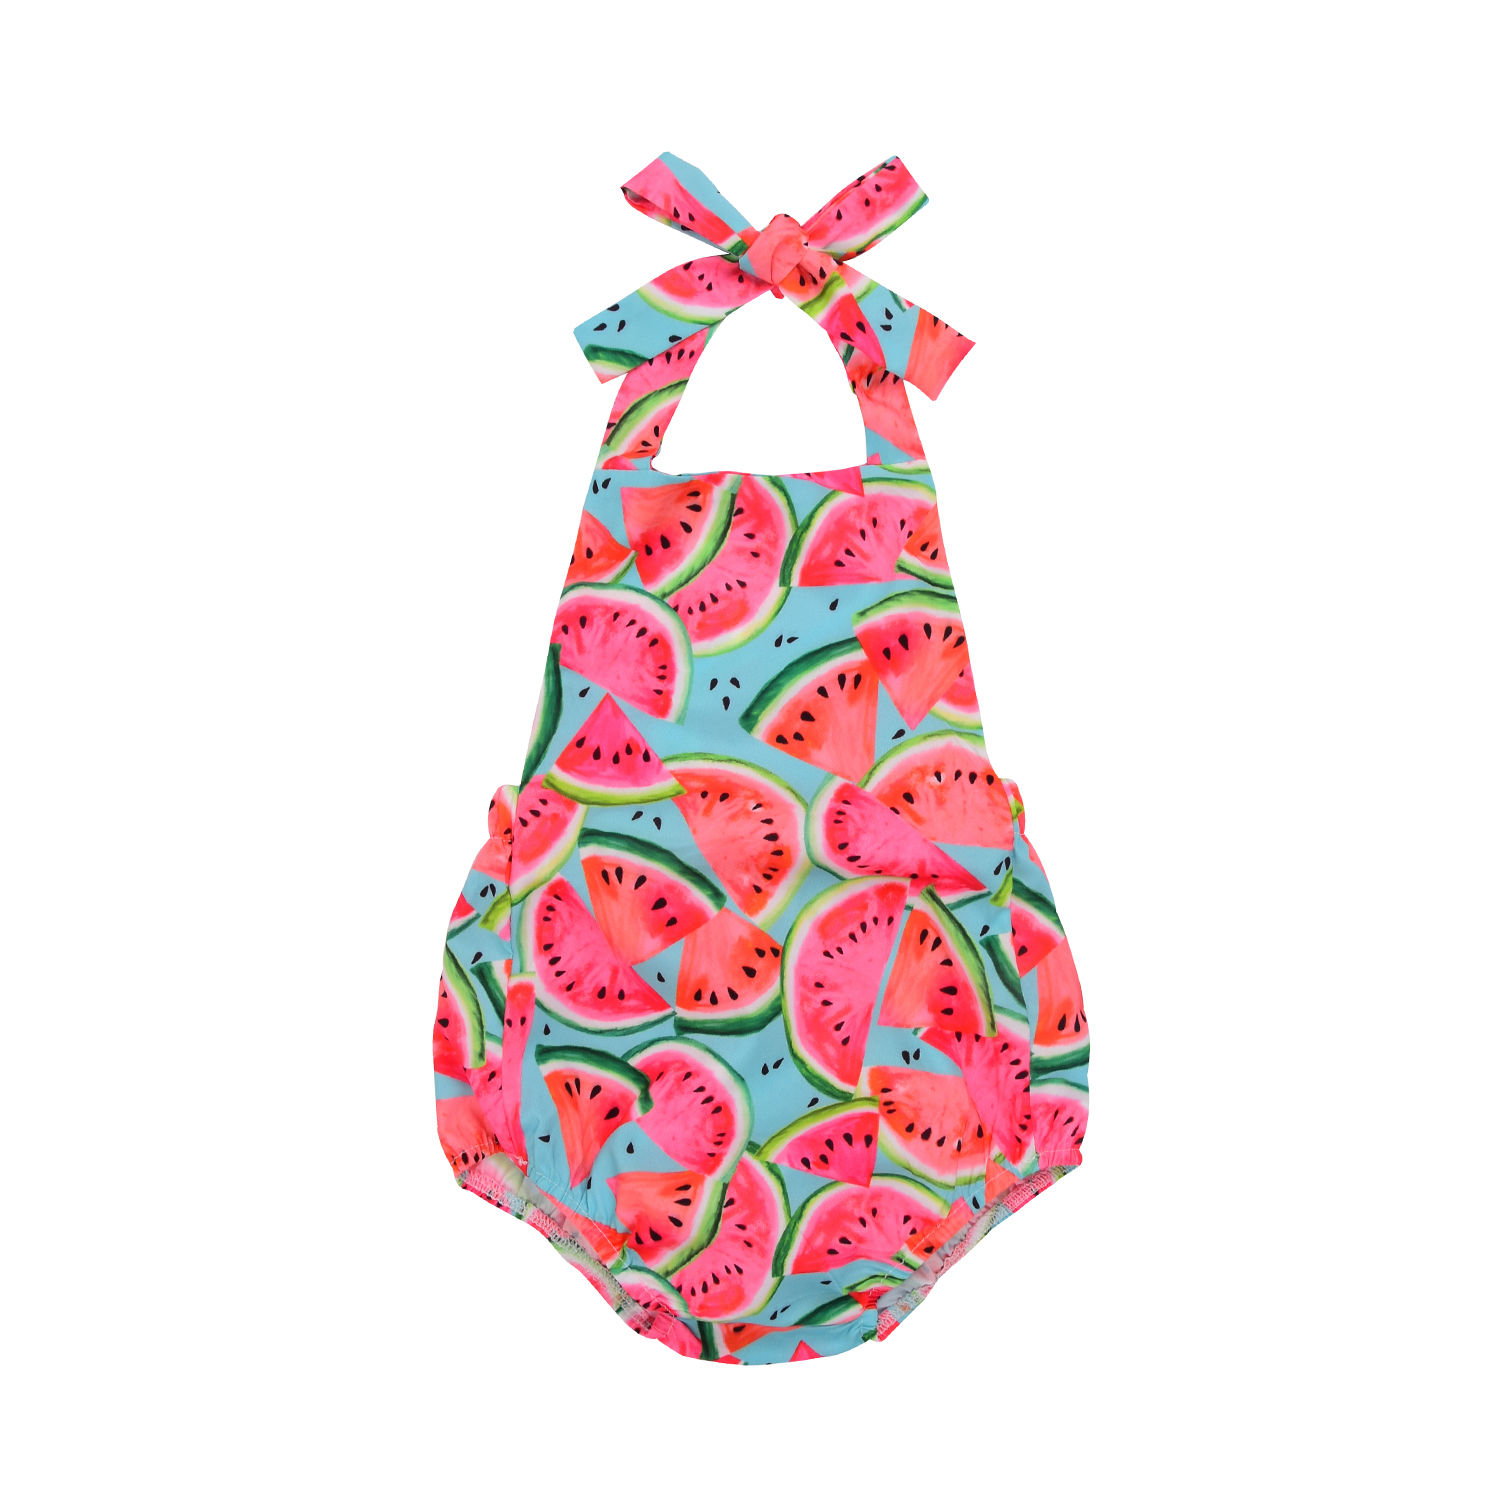 Cute Newborn Toddler Baby Kids Girls Watermelon   Romper   Jumpsuit Cotton Sunsuit One-Pieces Summer Outfits Clothes